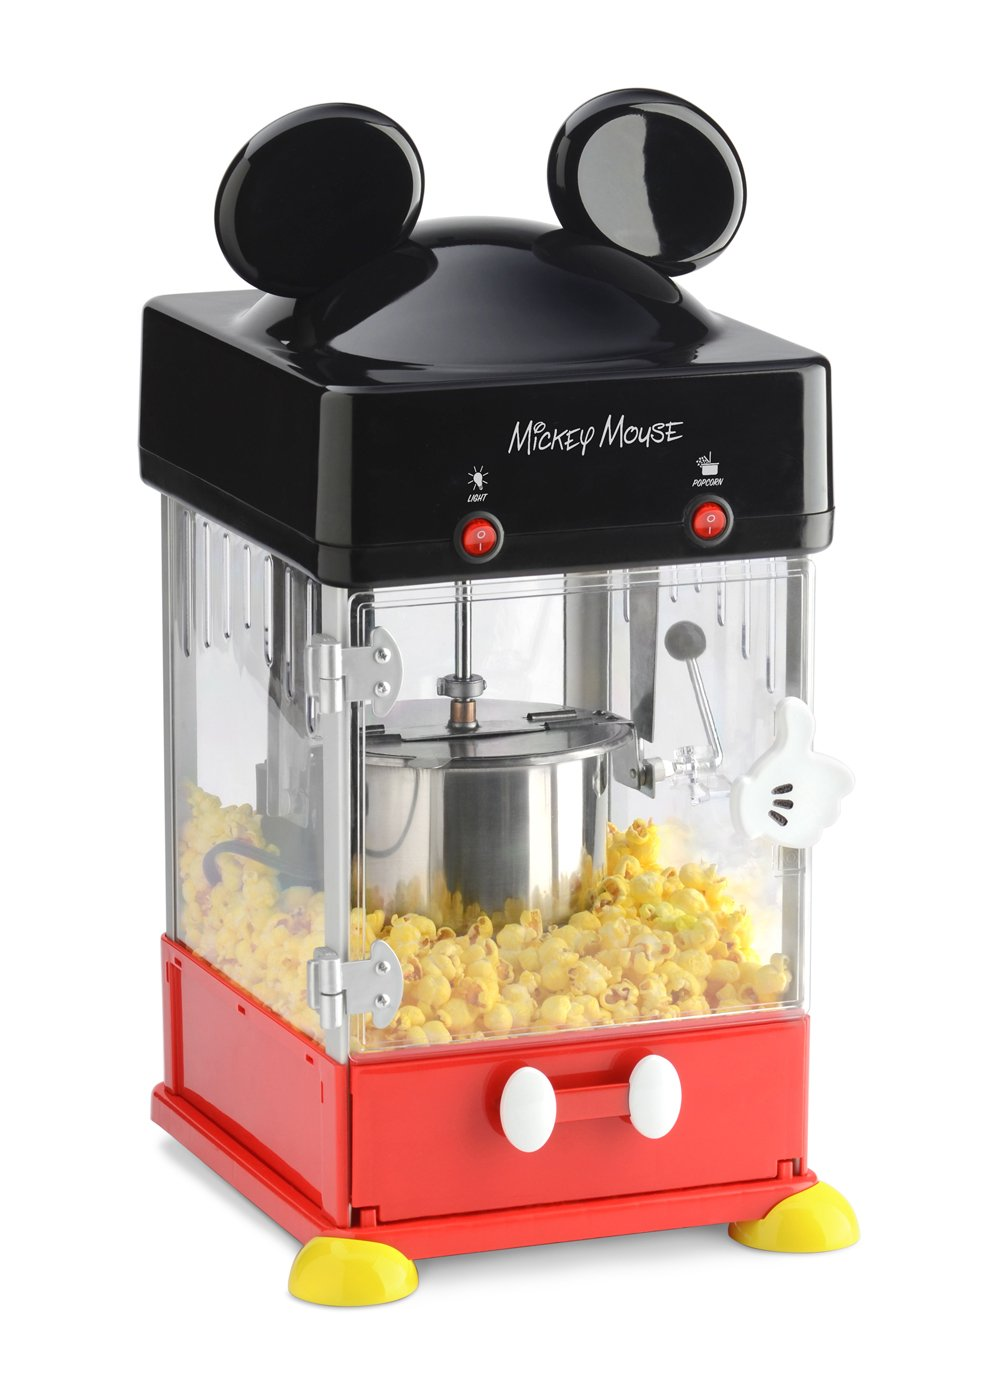 Mickey Mouse Popcorn Popper Gift for People Who Love Disney